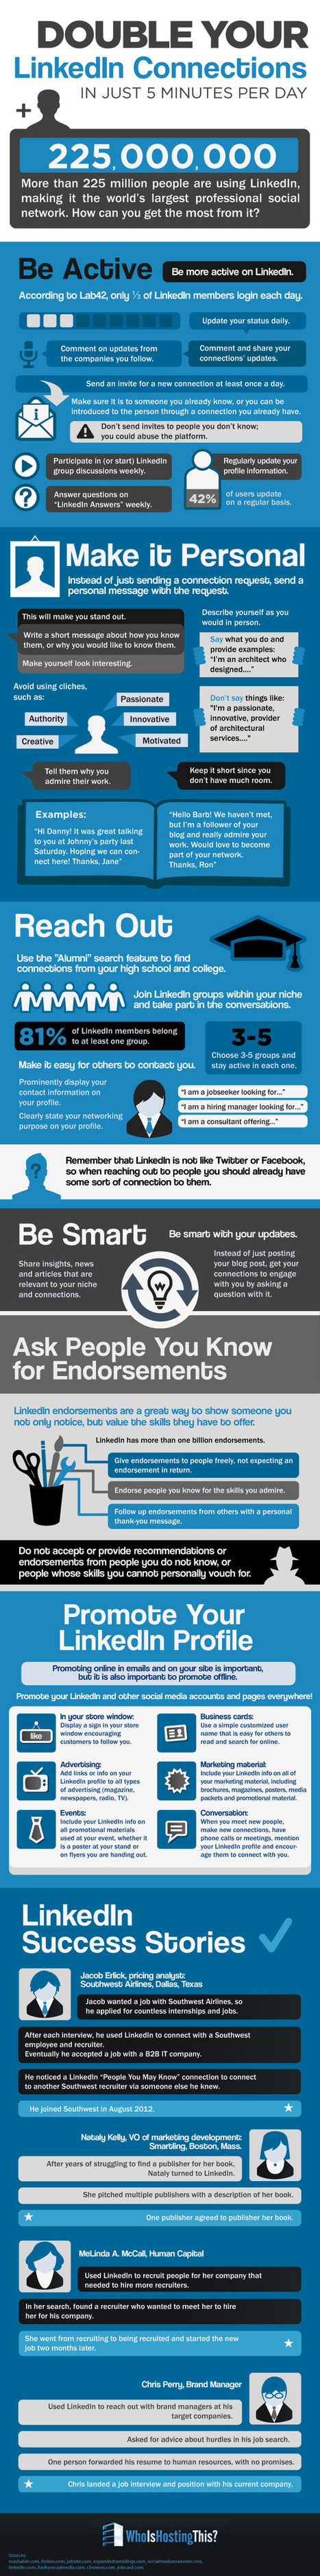 Double Your LinkedIn Connections in Just Five Minutes a Day   Social Media   Scoop.it